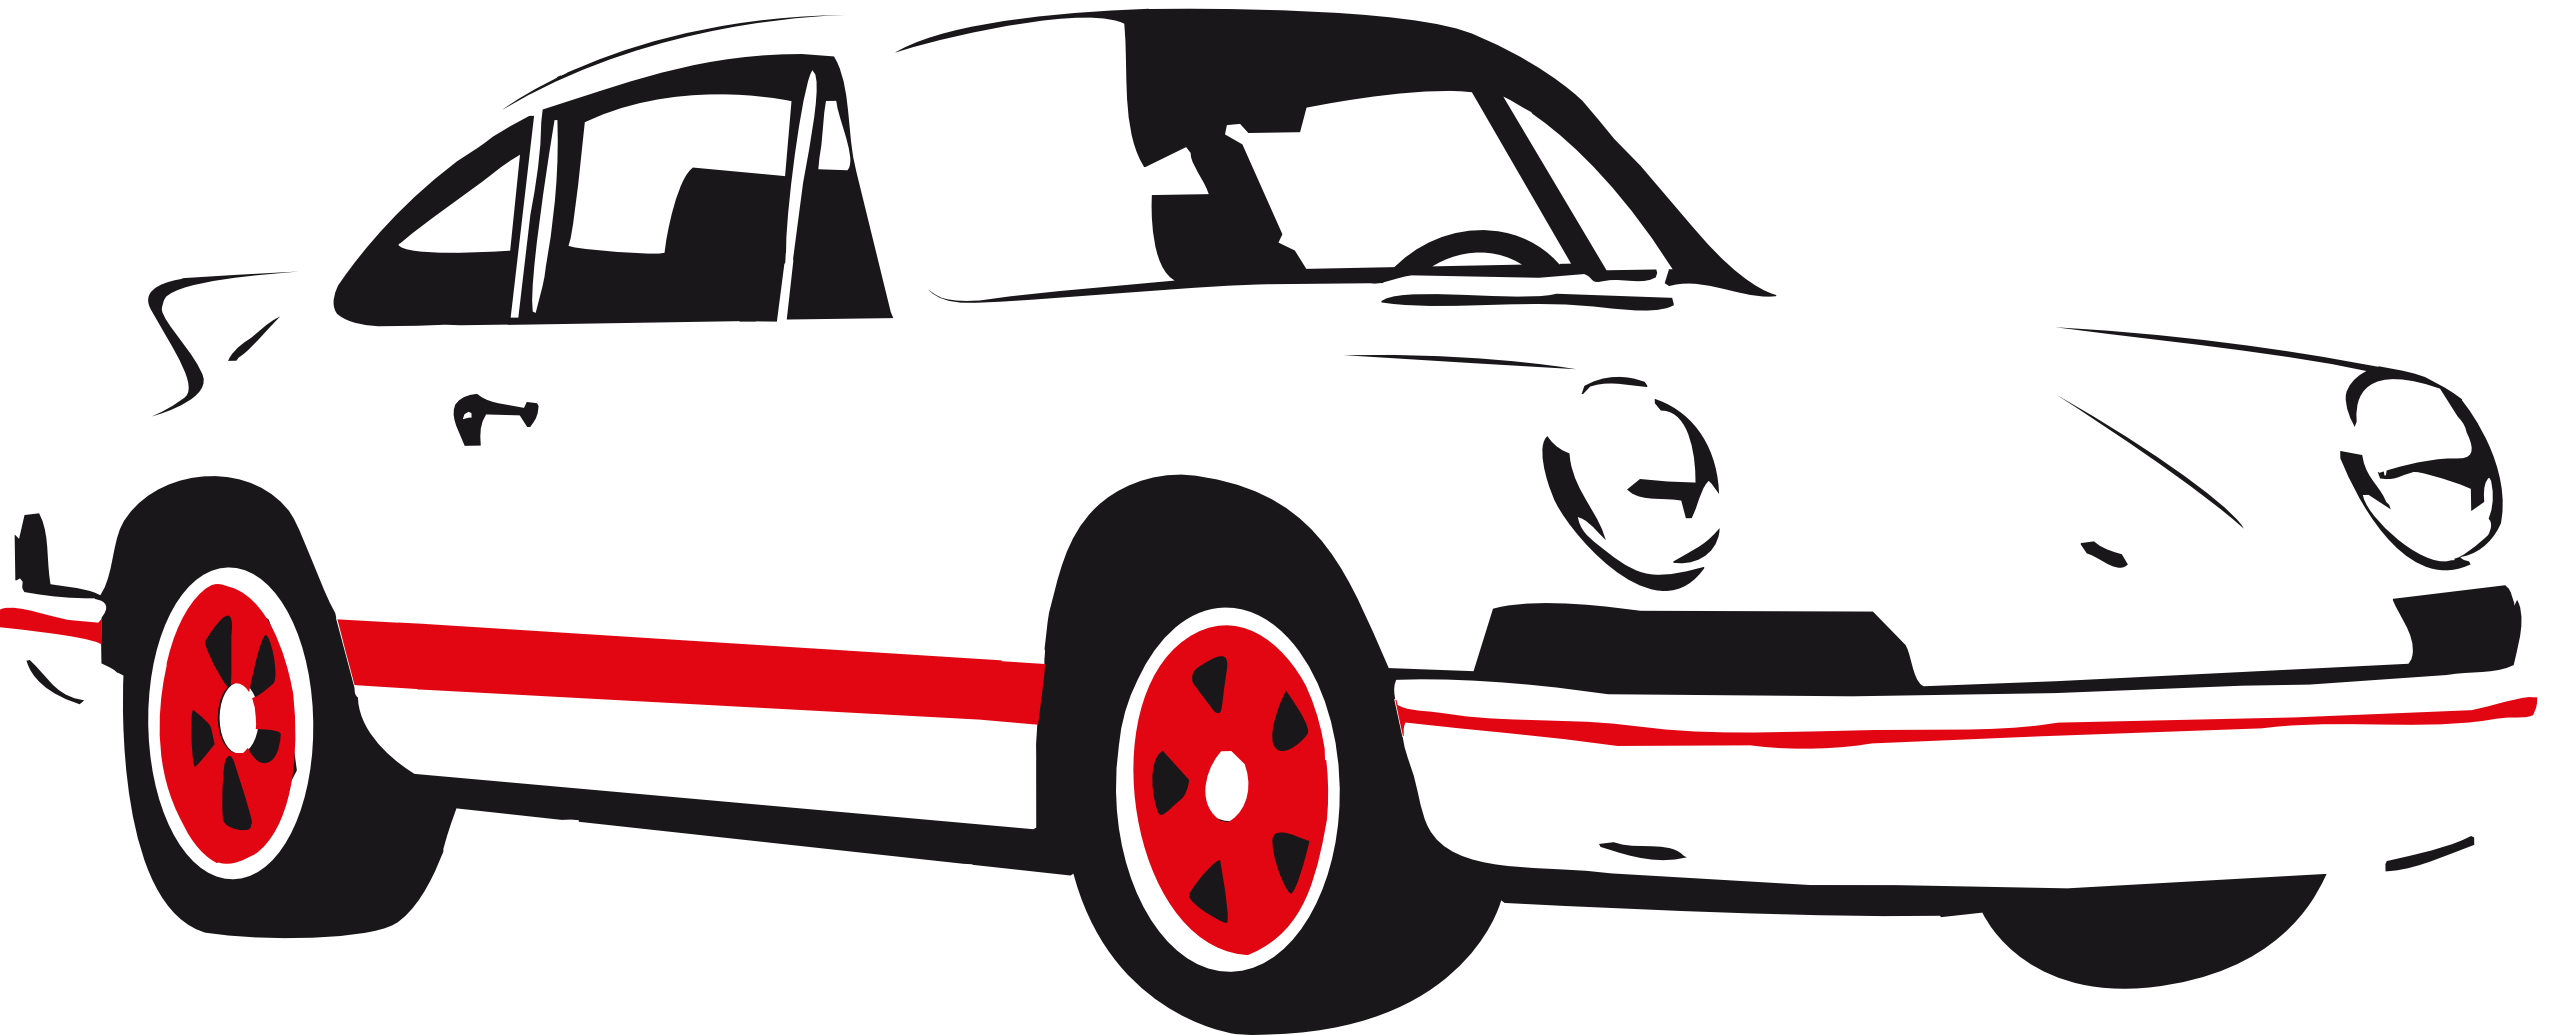 Race car silhouette clip. Clipart cars black and white